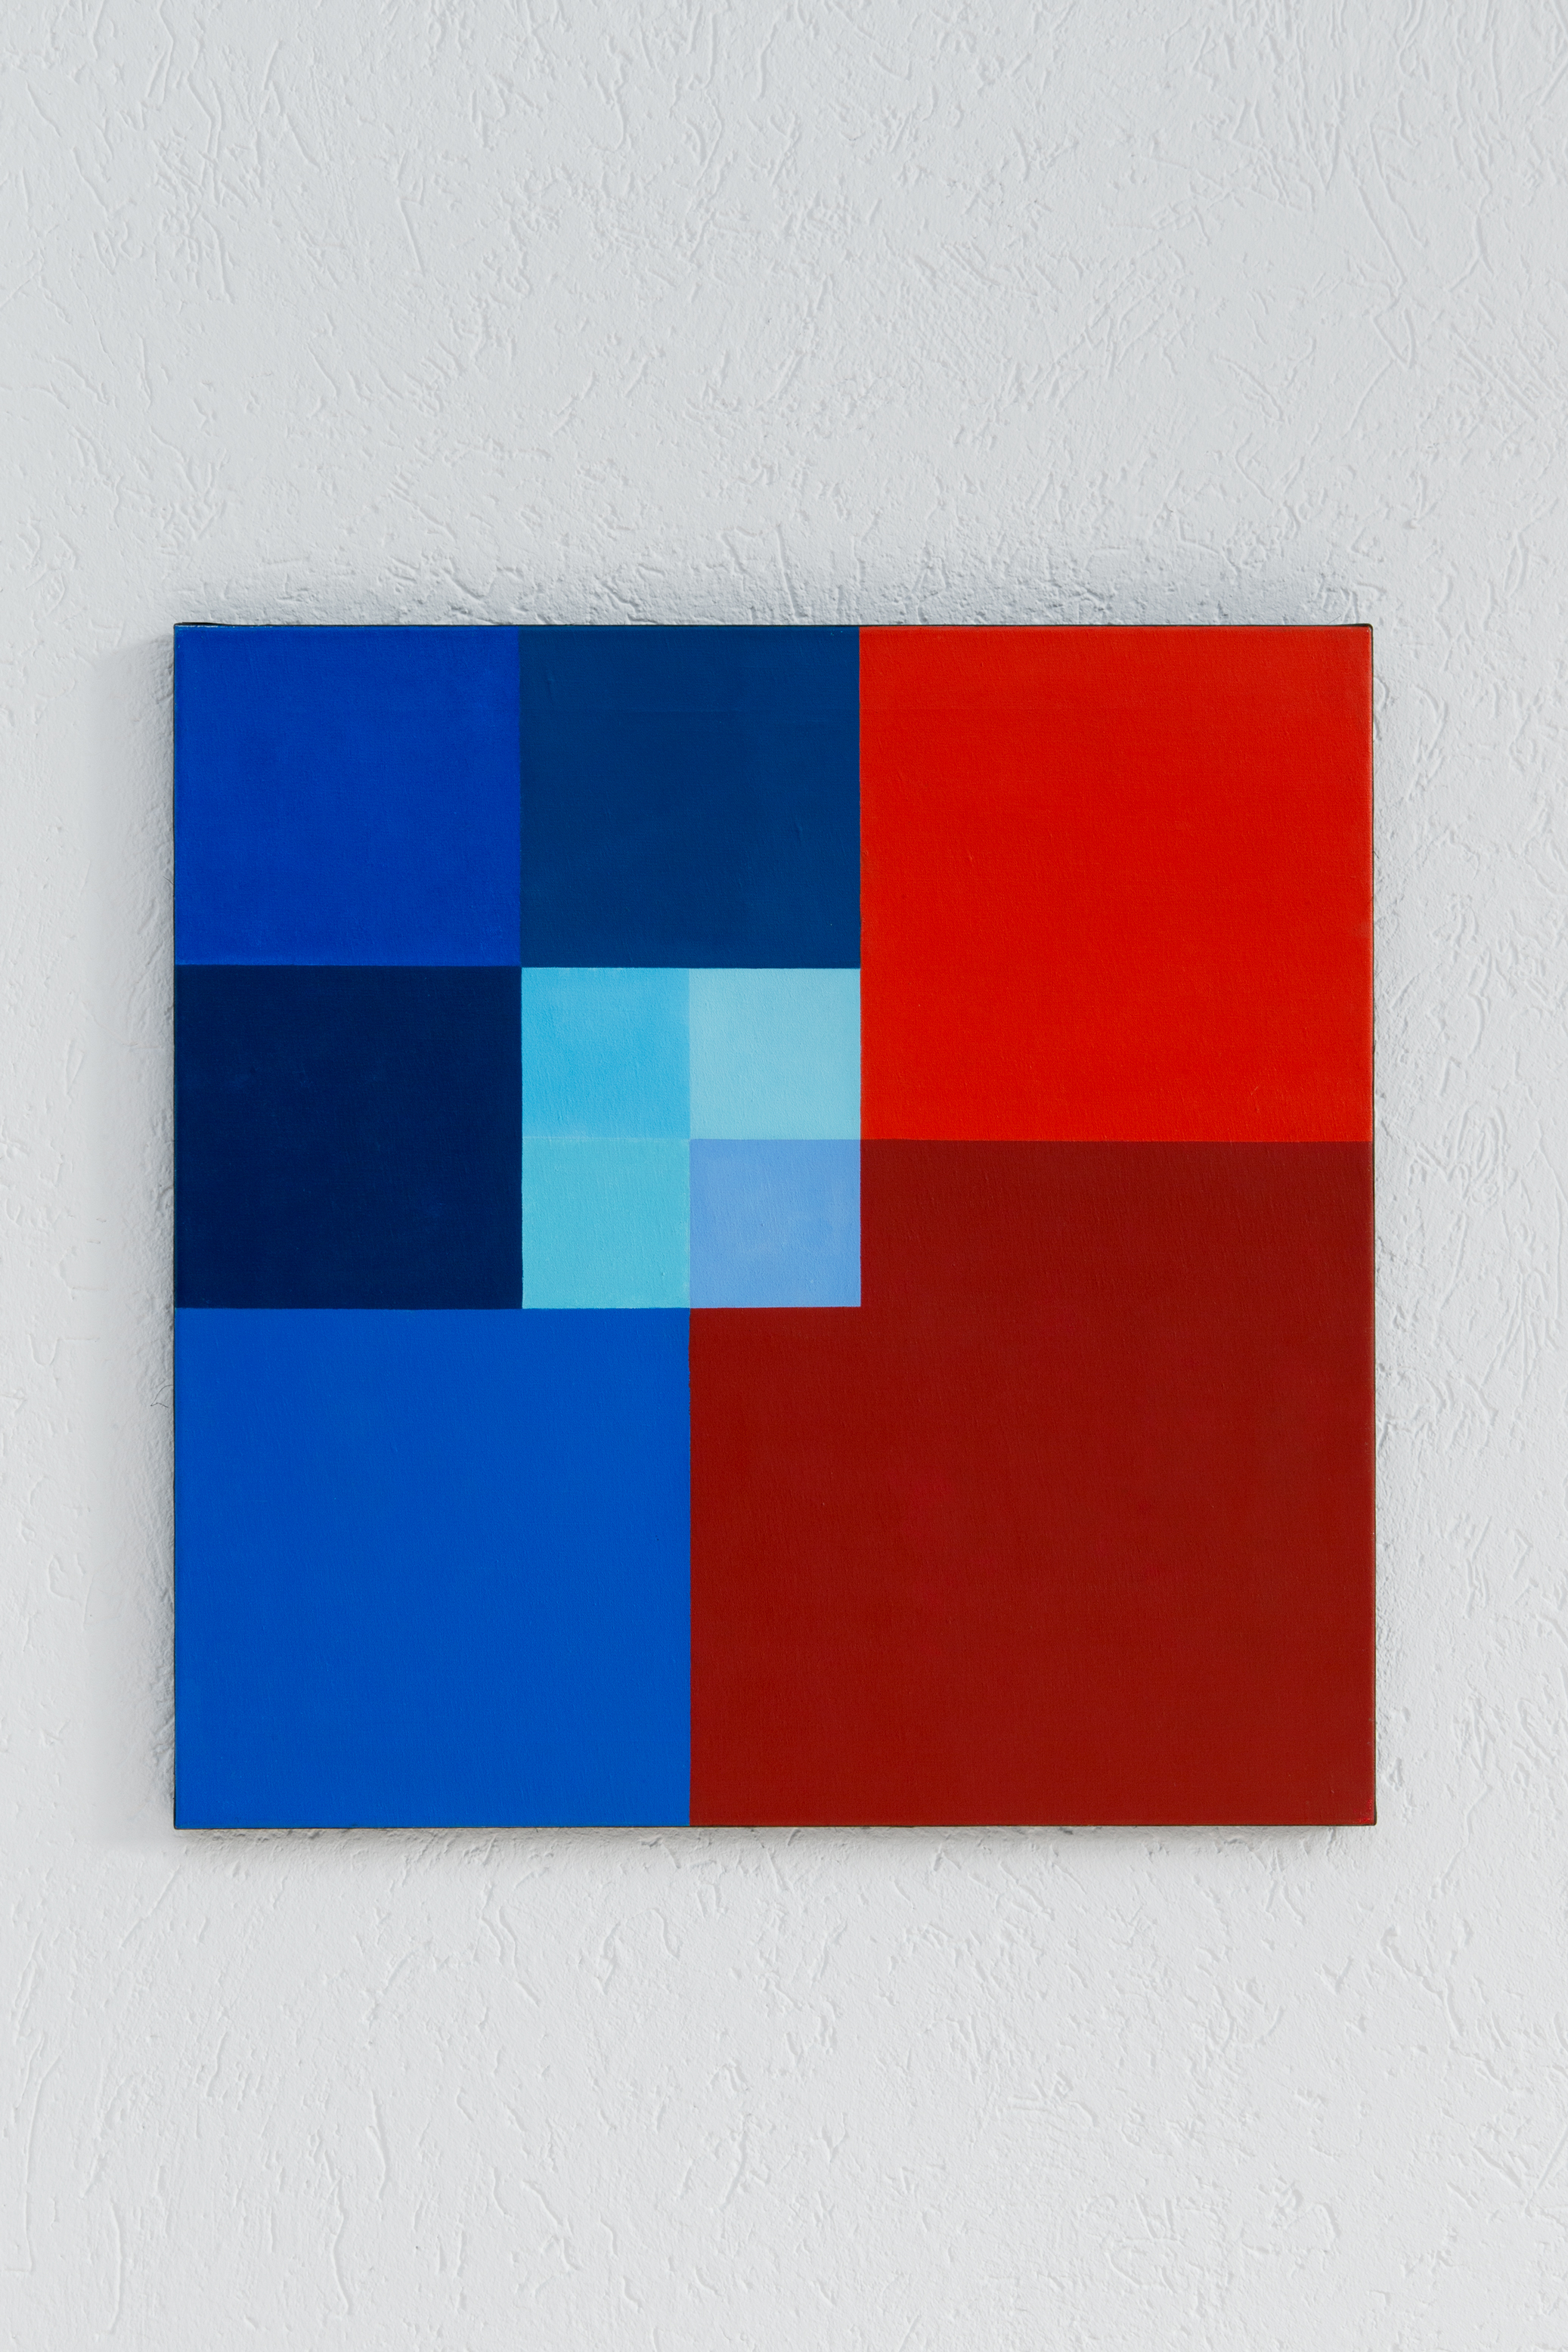 Hedi Mertens,  Ohne Titel , 1973, oil on canvas, 66 x 66 cm